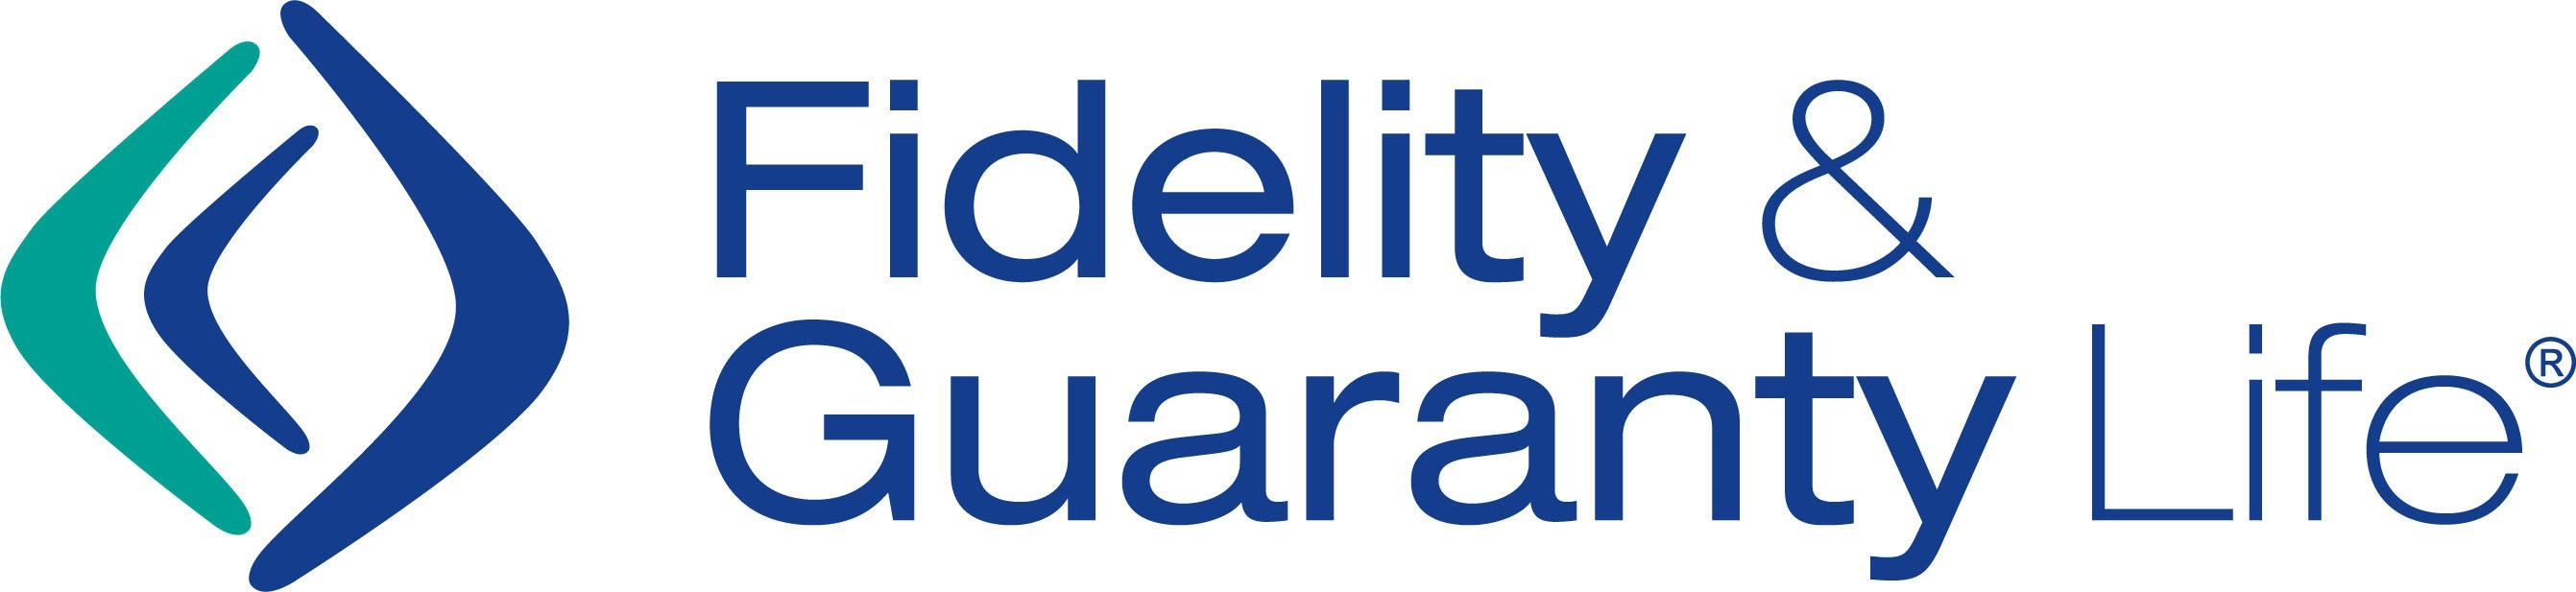 fidelity asian personals Name: fidelity asian values: epic: fas: sector: equity investment instruments: isin: gb0003322319: activites: investment trust index: n/a.